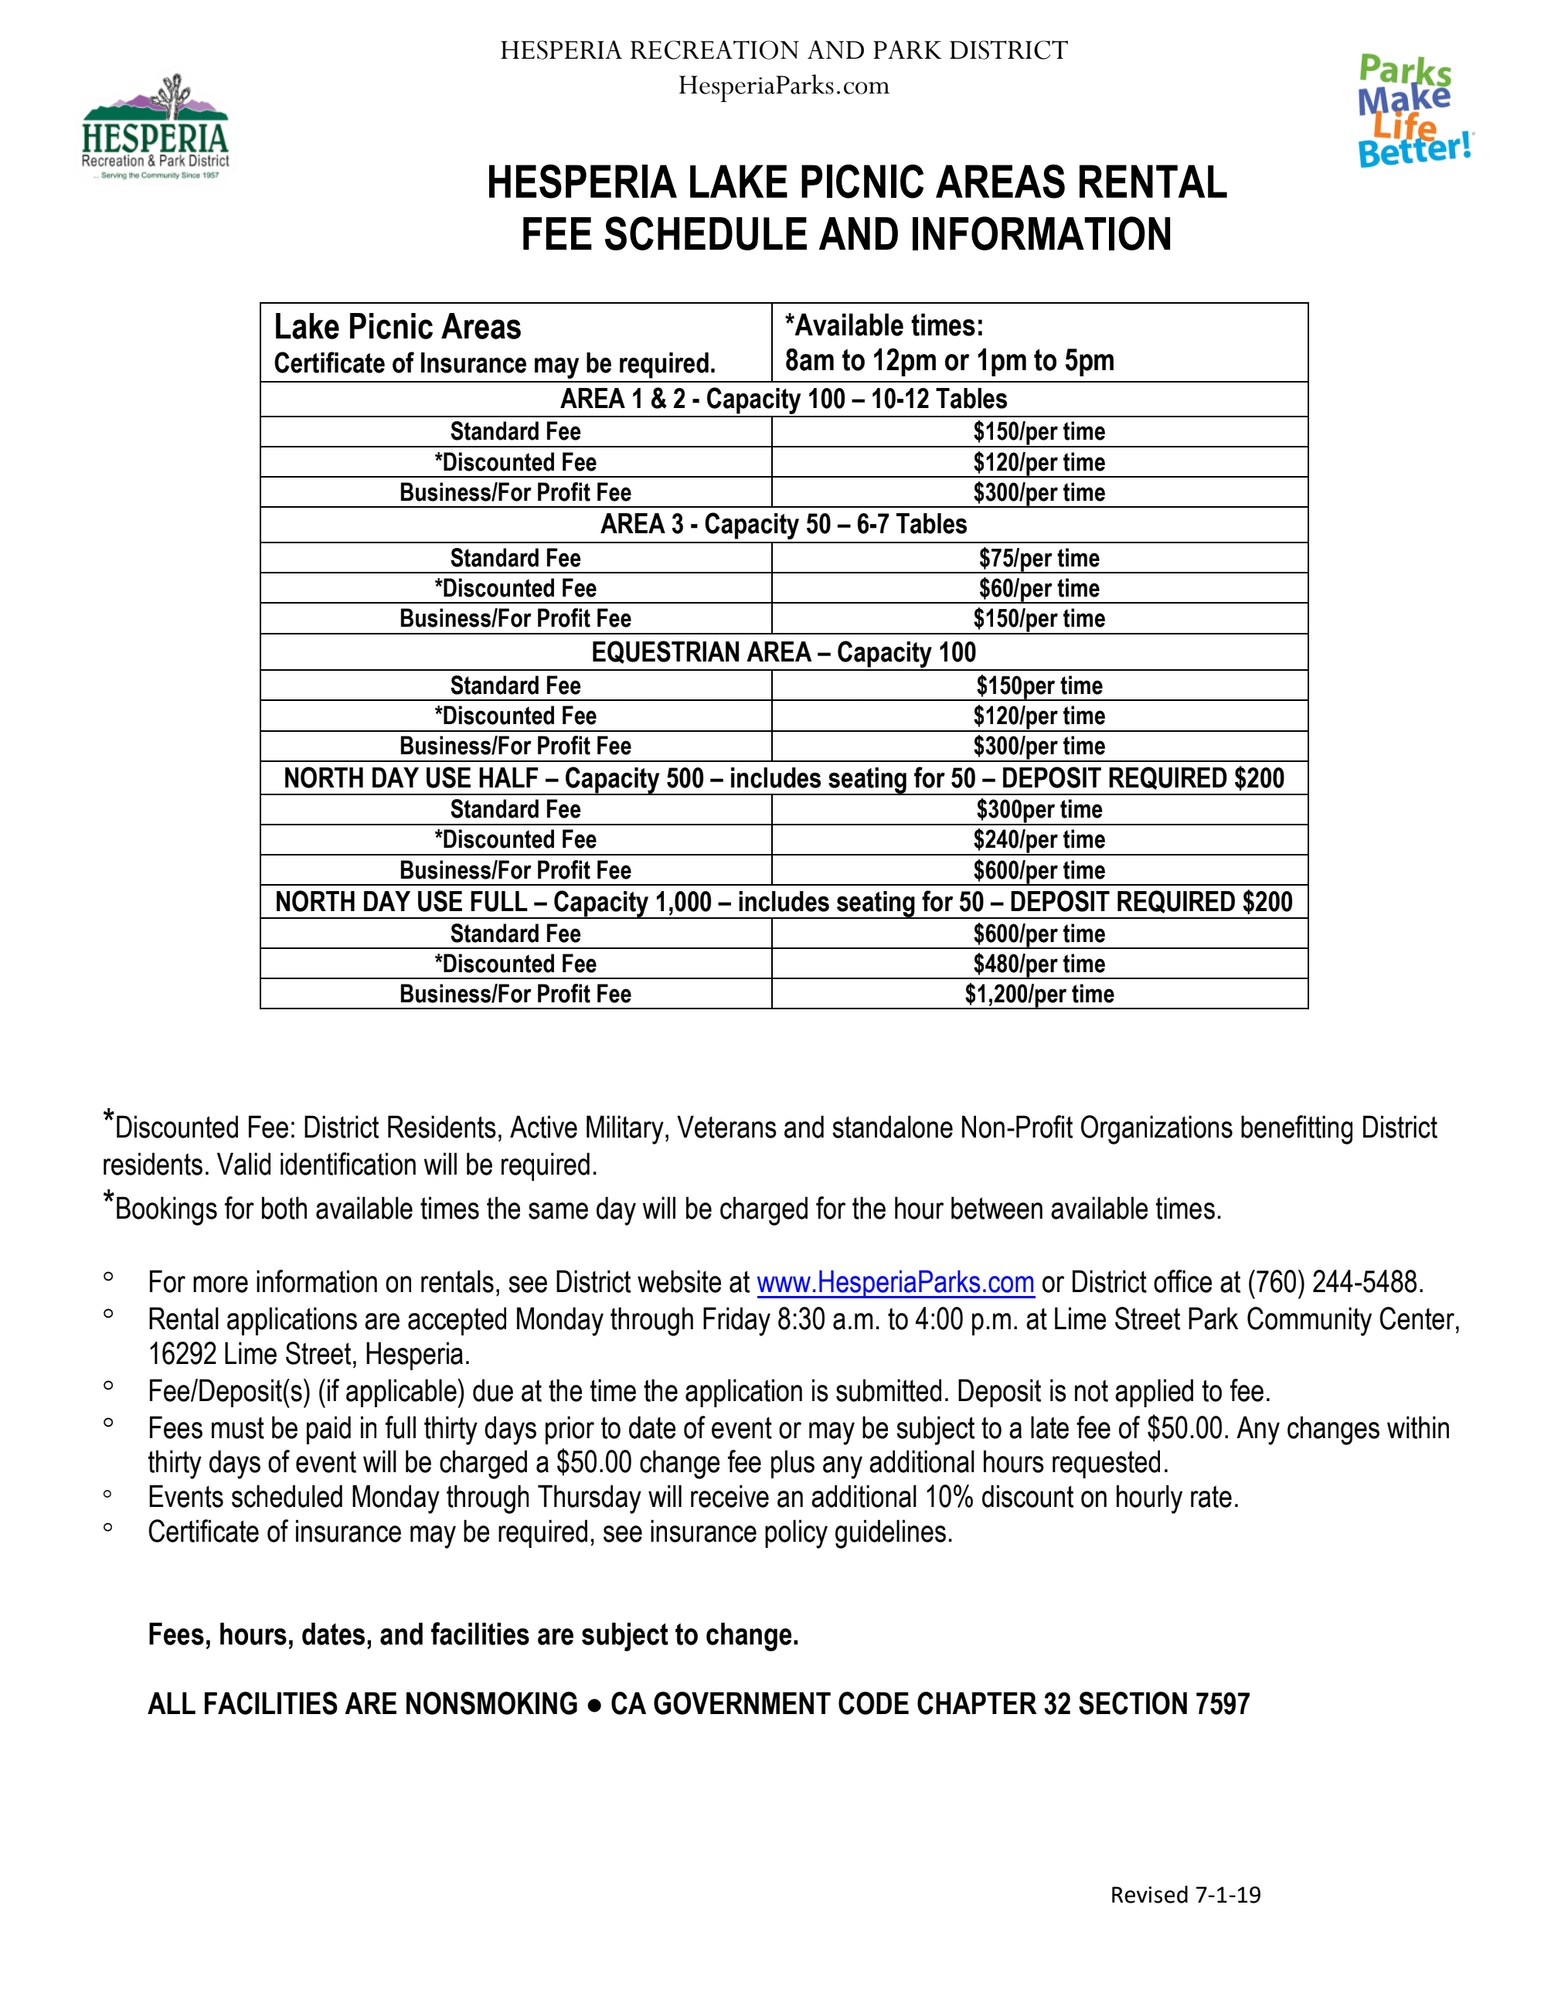 Hesperia Lake Picnic Area Rental Fee Schedule and Information. Lake Picnic Areas Certificate of insurance may be required. *Available Times 8 am to 12 pm or 1 pm to 5 pm. Area 1 & 2 Capacity 100 10-12 tables. Standard fee $150/per time. *Discounted fee $120/per time. Business/For Profit fee $300/per time. Area 3 Capacity 500- includes seating for 50 6-7 tables. Standard fee $75/per time. *Discounted fee $60/per time. Business/For Profit fee $300/per time. Equestrian Area Capacity 100 Standard fee $150/per time. *Discounted fee $120/per time. Business/ For Profit fee $300/per time. North Day Use Half- Capacity 500 - includes seating for 50- Deposit required $200. Standard fee $300/per time. *Discounted fee $240/per time. Business/For Profit fee $600/per time. North Day Use Full-Capacity 1,000-Includes seating for 50 - Deposit required $200. Standard fee $600/per time. *Discounted fee $480/per time. Business/For Profit $1,200/per time. *Discounted fee: District residents, active military, veterans and standalone non-profit organizations benefiting District residents. Valid identification will be required. *Bookings for both available times the same day will be charged for the hour between available times. For more information on rentals, see District website at www.hesperiaparks.com or call District office at (760) 244-5488. Rental applications are accepted Monday through Friday 8:30 am to 4:00 pm at Lime Street Park Community Center, 16292 Lime Street, Hesperia. Fee/Deposit(s) (if applicable) due at the time the application is submitted. Deposit is not applied to fee. Fees must be paid in full thirty days prior to date of event or may be subject to a late fee of $50.00. Any changes within thirty days of event will be charged a $50.00 change fee plus any additional hour requested. Events scheduled Monday through Thursday will receive an additional 10% discount on hourly rate. Certificate of insurance may be required, see insurance policy guidelines. Fees, hours, dates